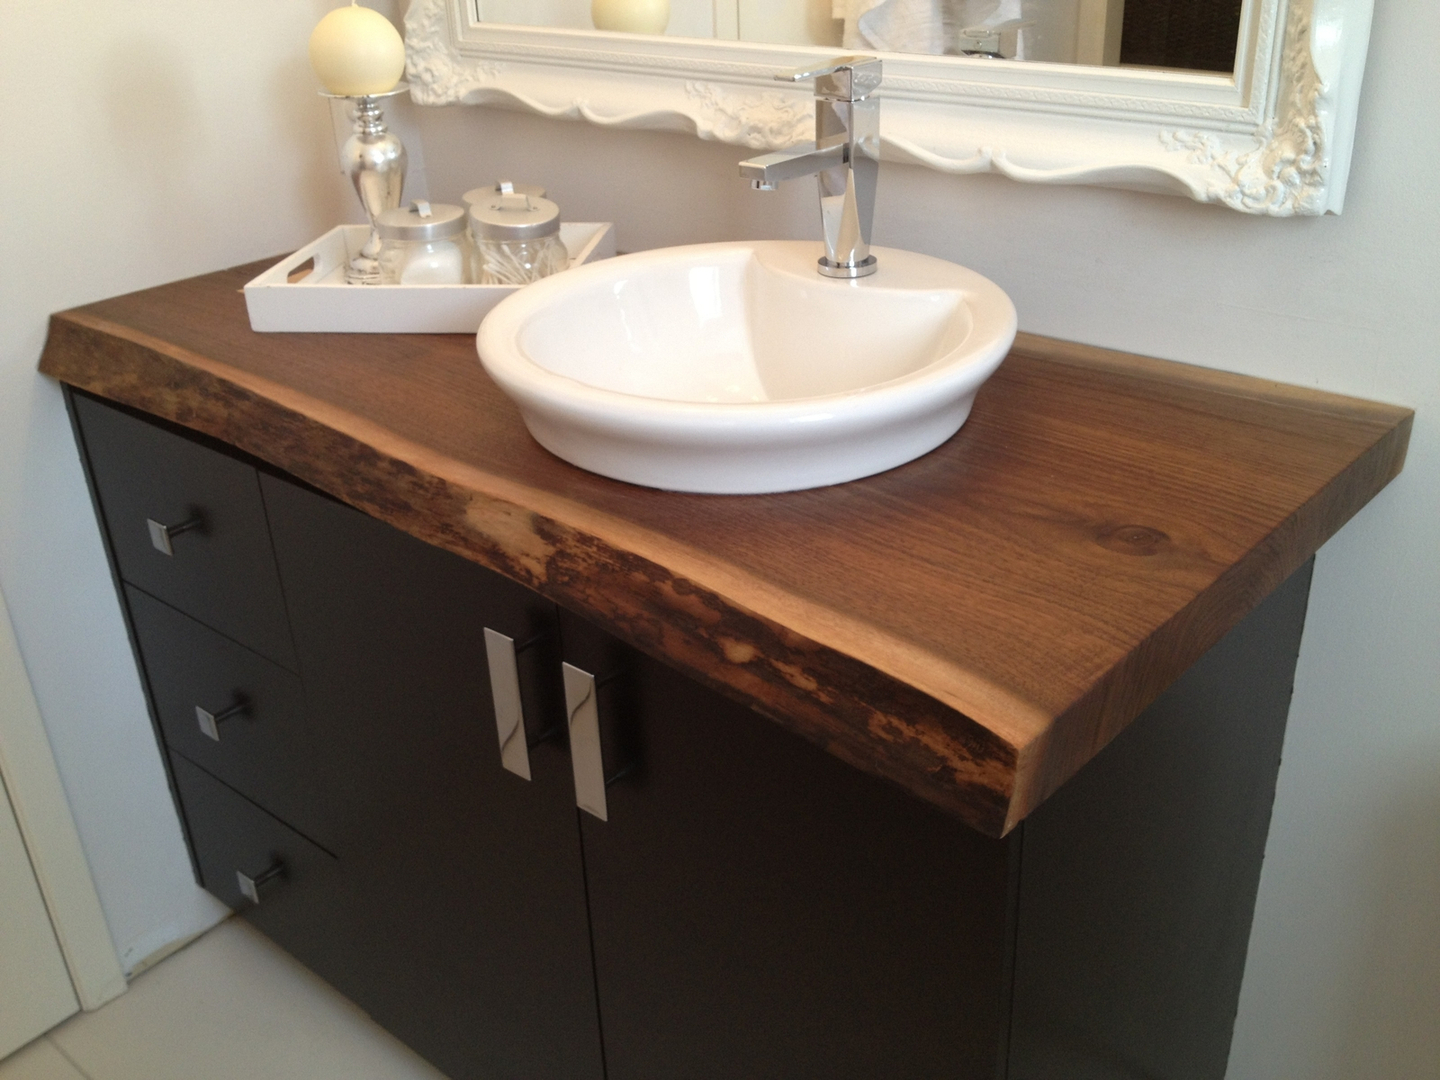 Bathroom Accessories Vancouver Kitchen And Bathroom Projects Coquitlam Burnaby North West